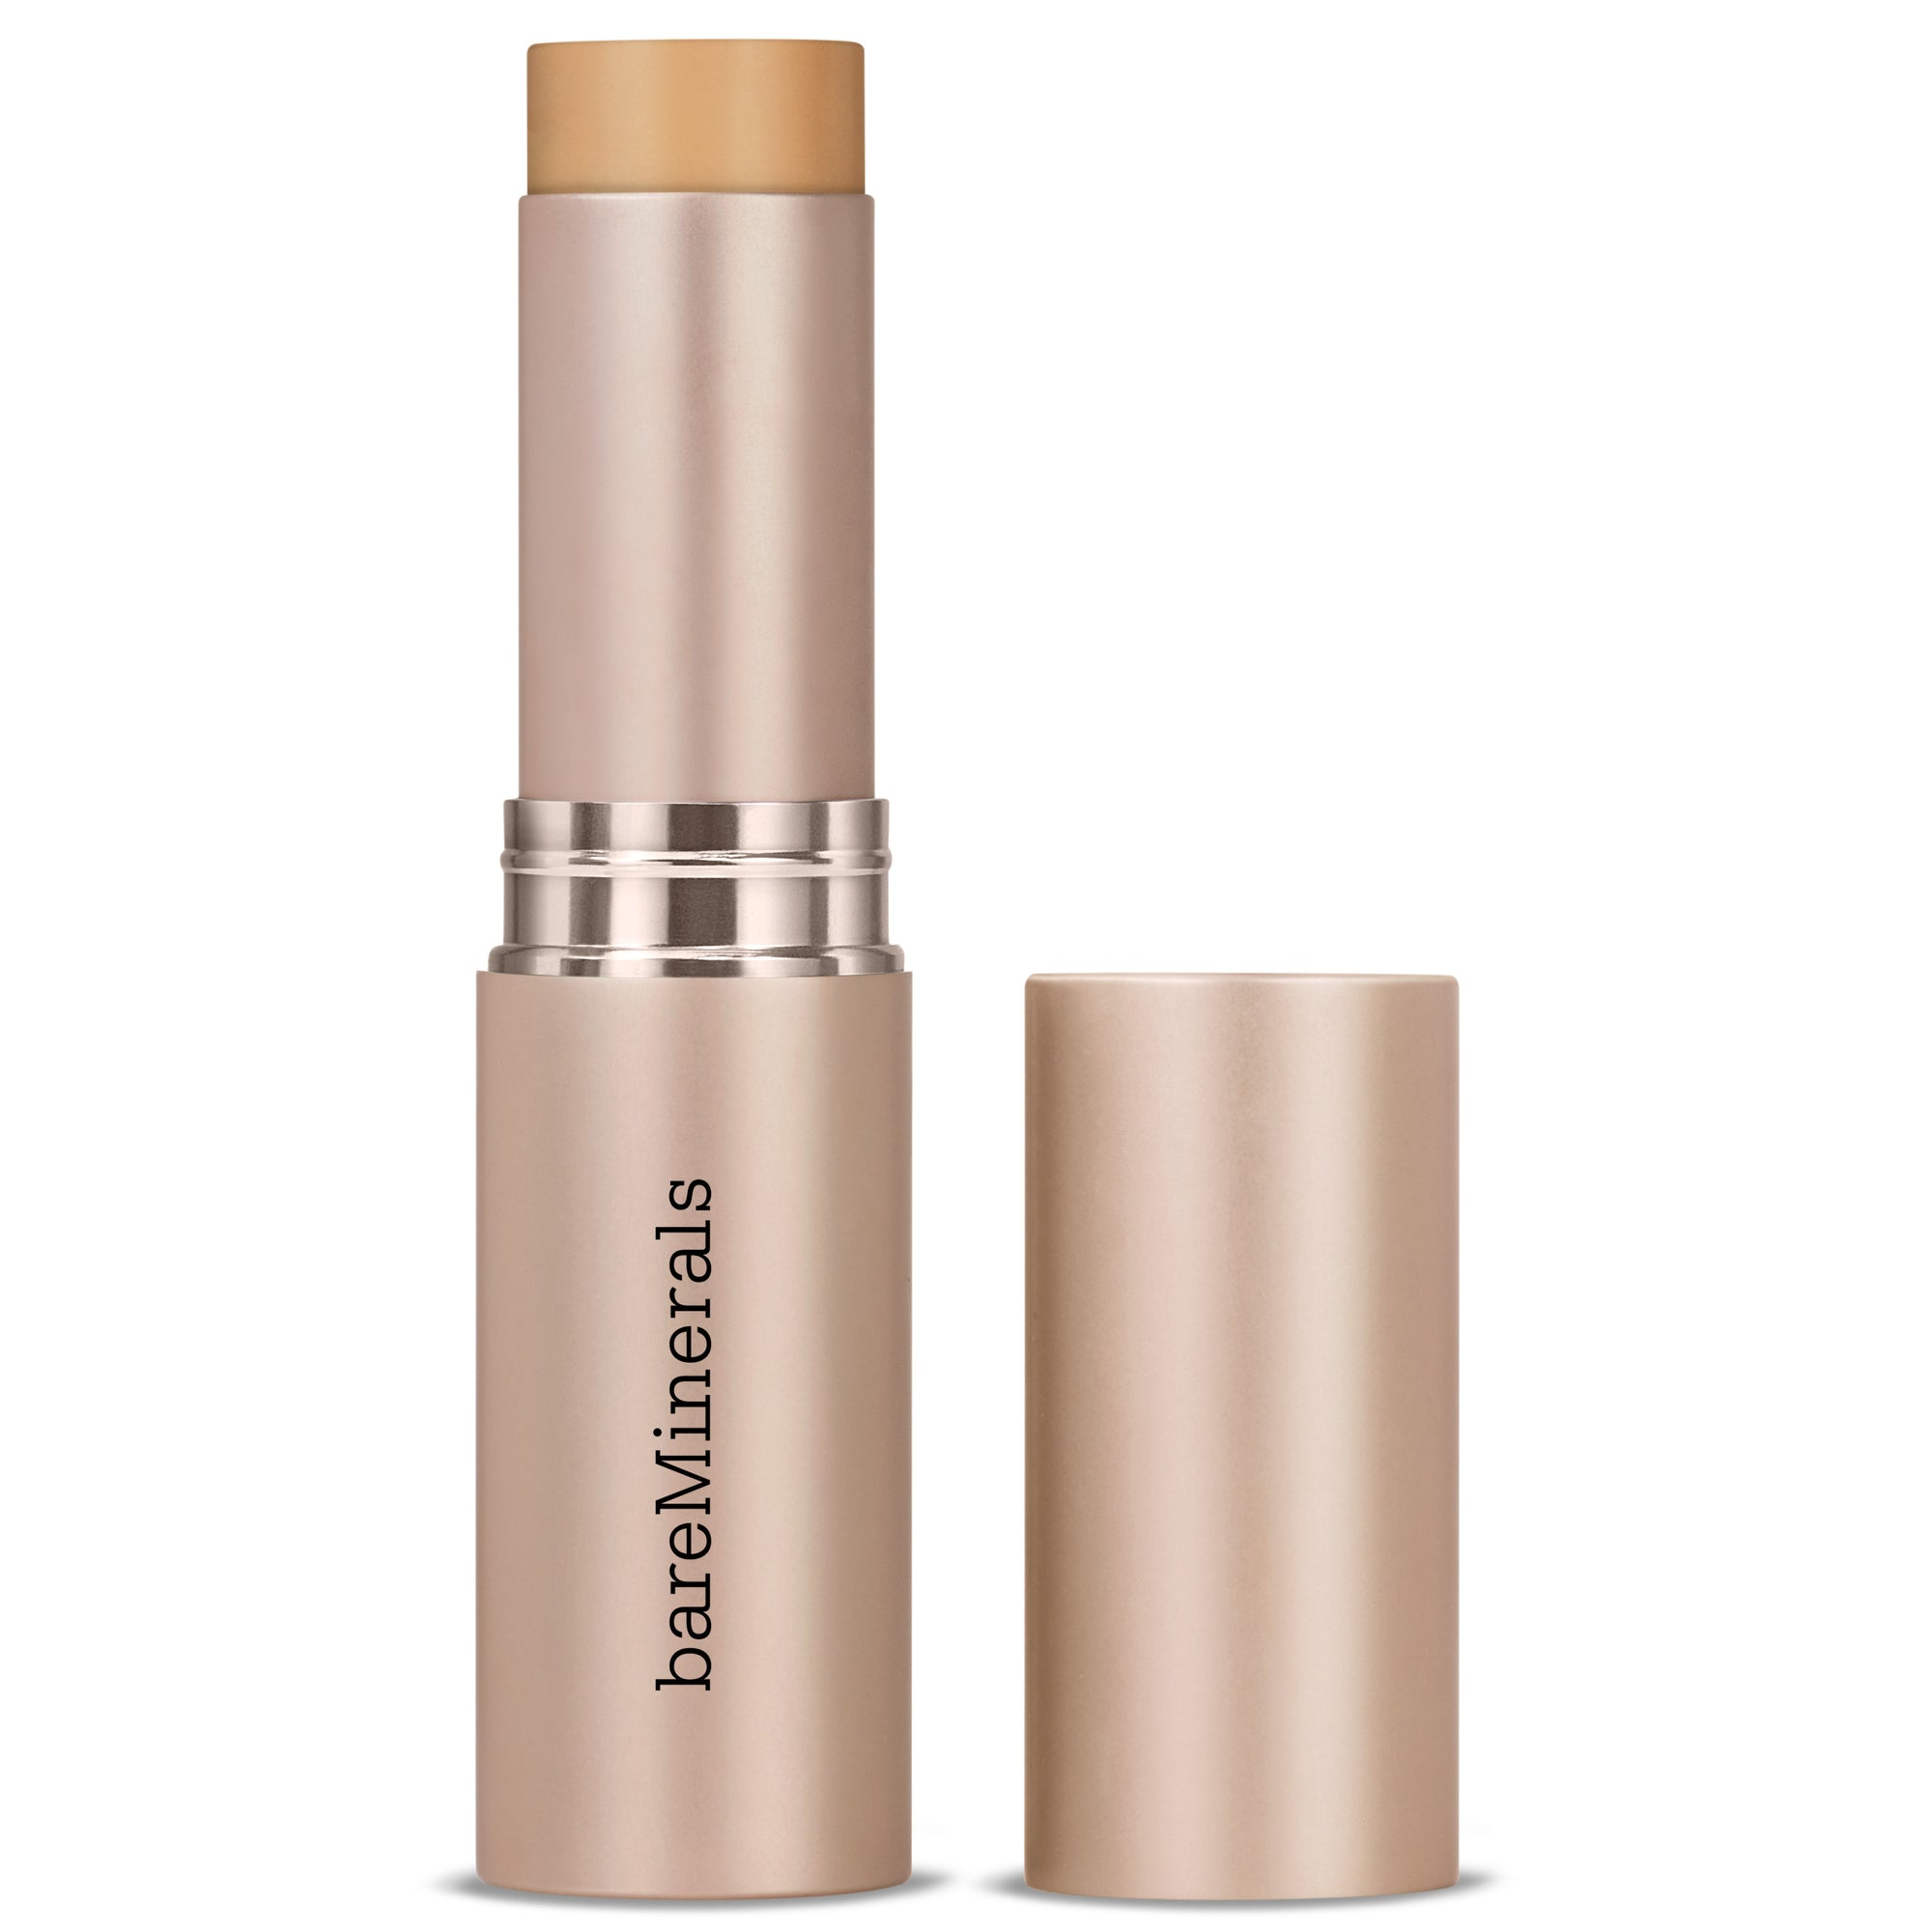 Complexion Rescue Hydrating Foundation Stick SPF 25 Dune 7.5